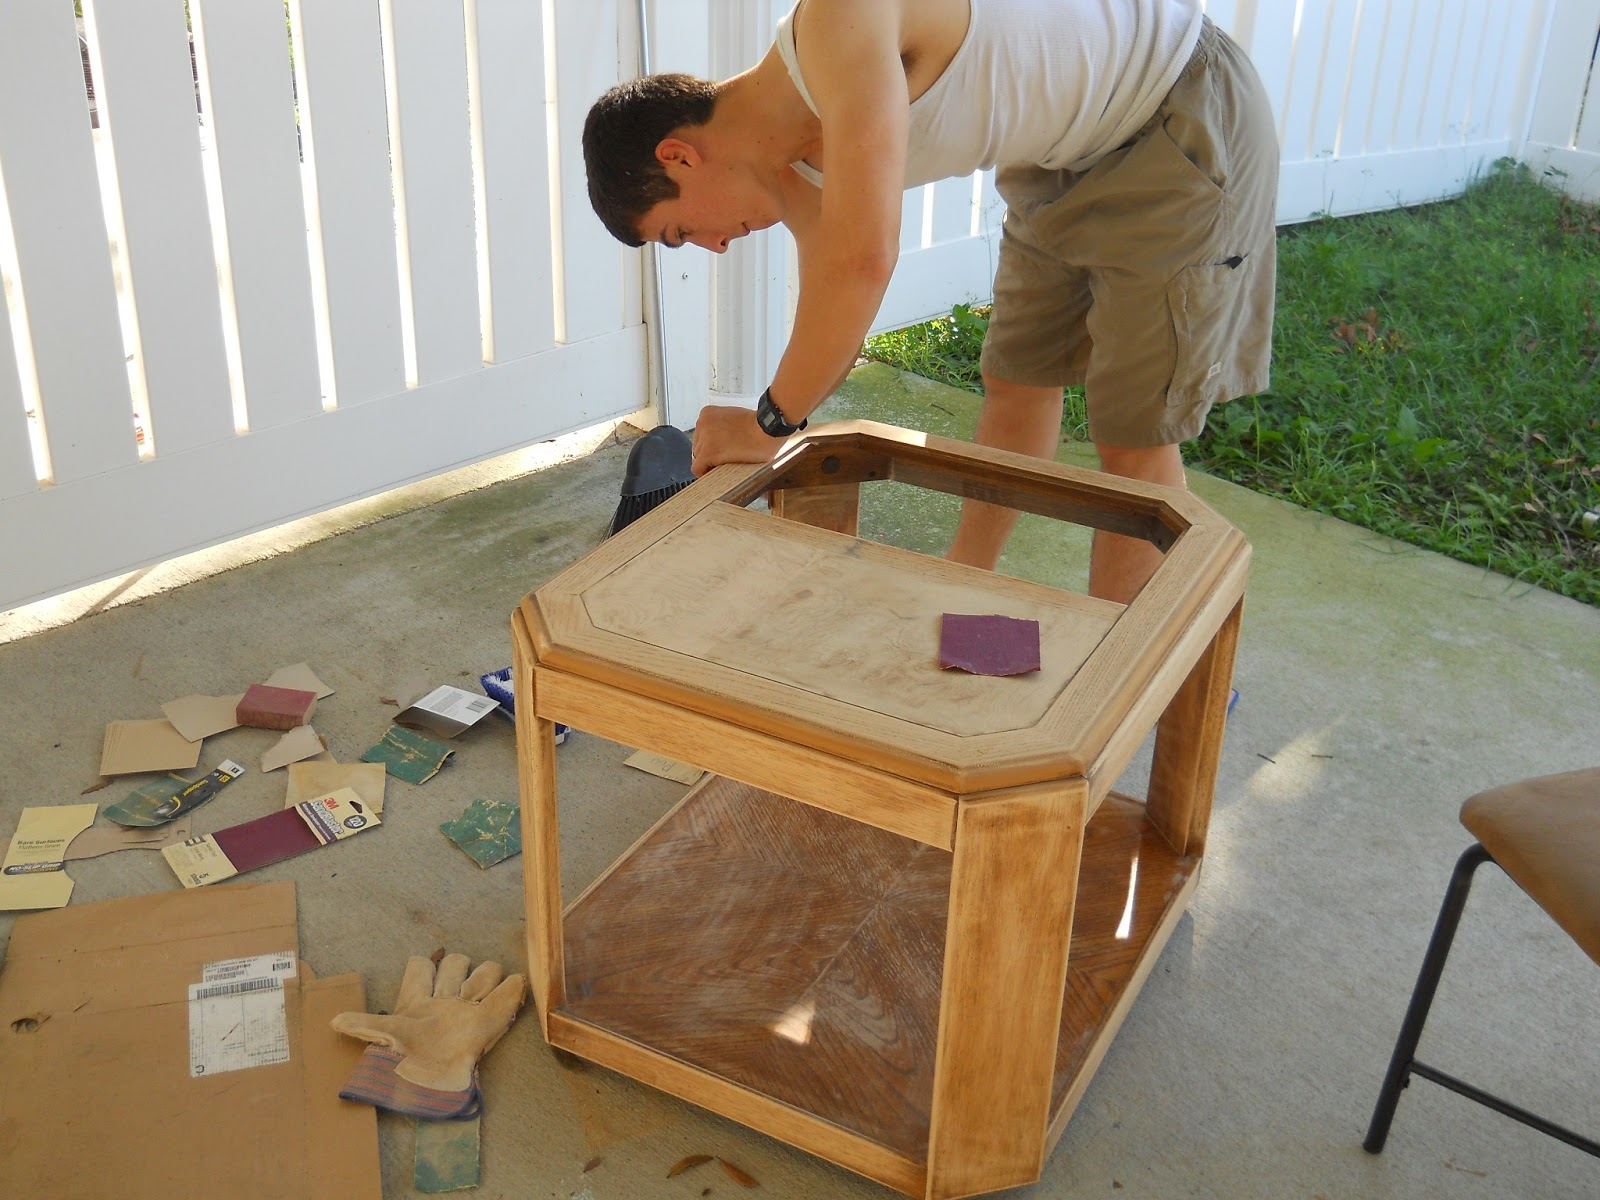 Blue Stain Wood Flooring also Stained Glass Jewelry Box besides How To Make DIY Bookshelves moreover Black Brown Wood Stain Paint moreover Materials  Fasteners  And Tools For Building A  posite Deck. on emerald green wood stain